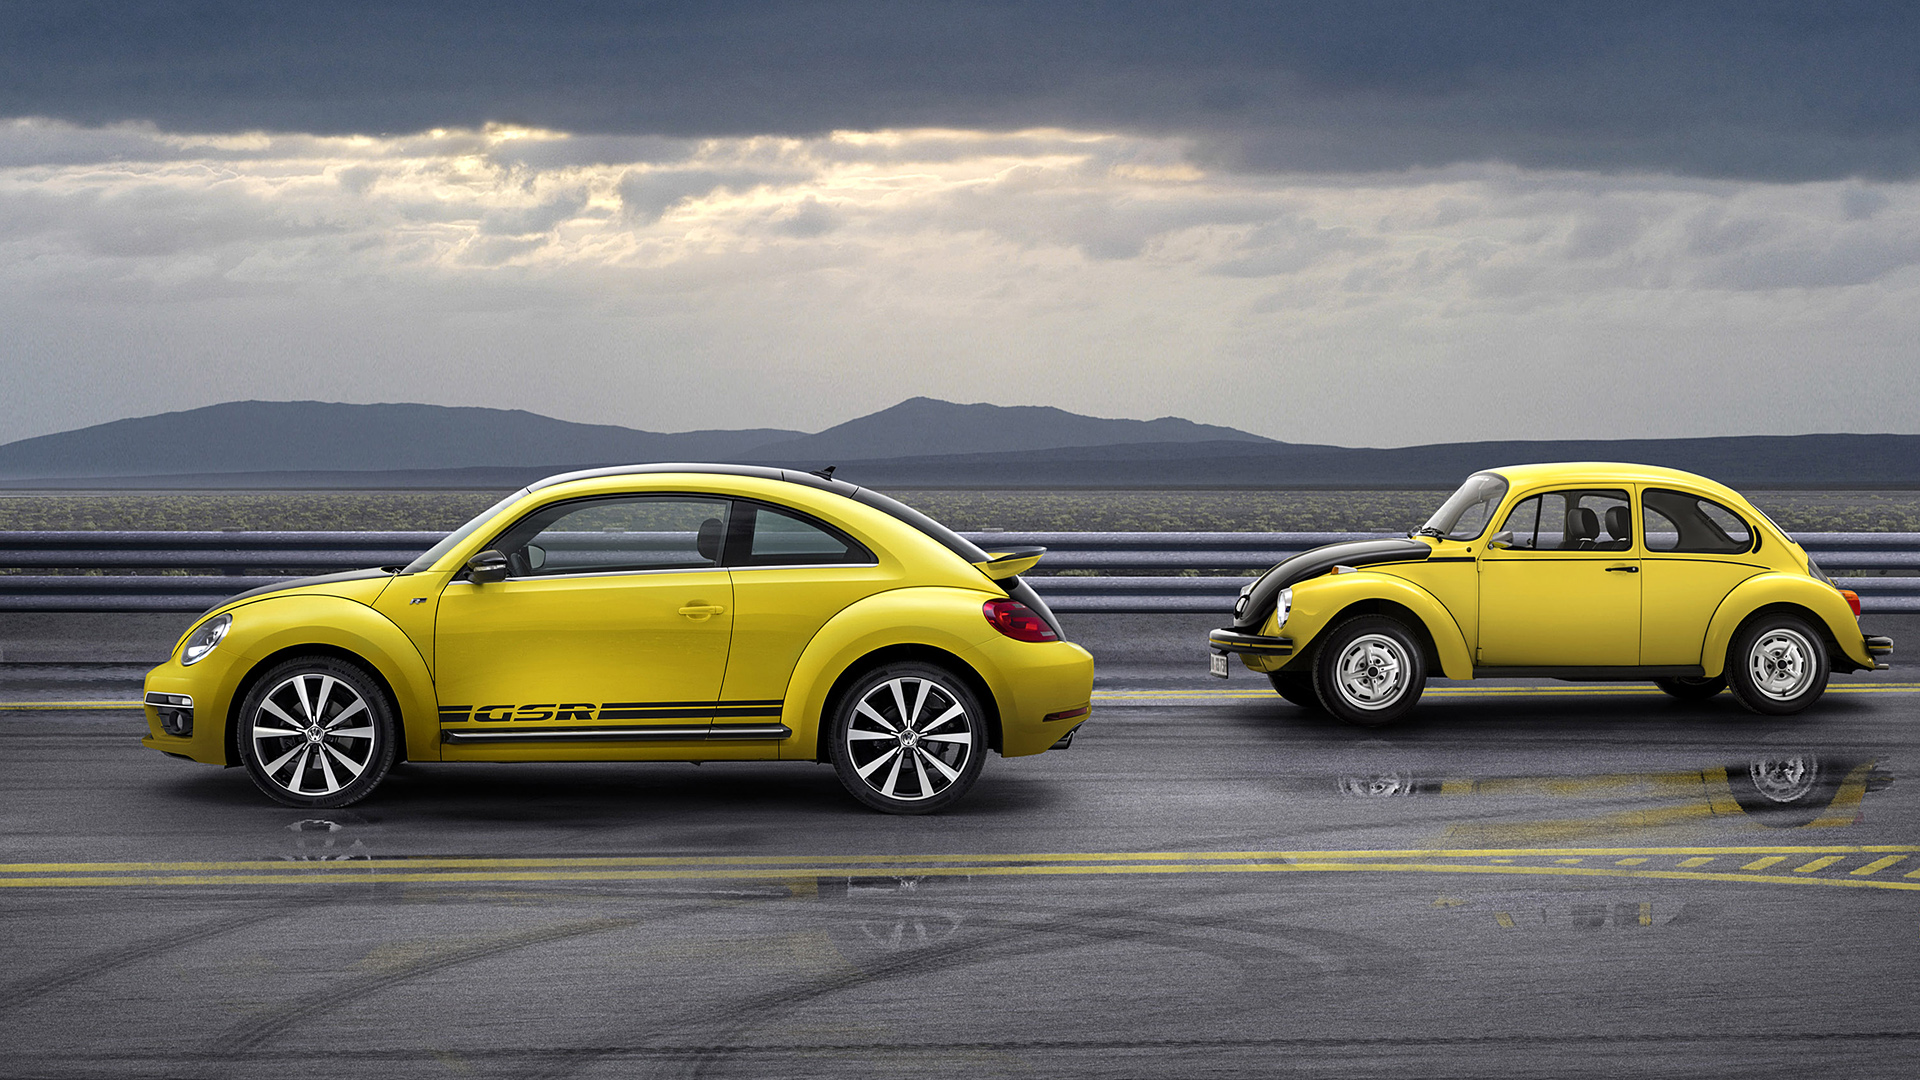 Volkswagen Beetle GSR 2013 Wallpaper   HD 1920x1080